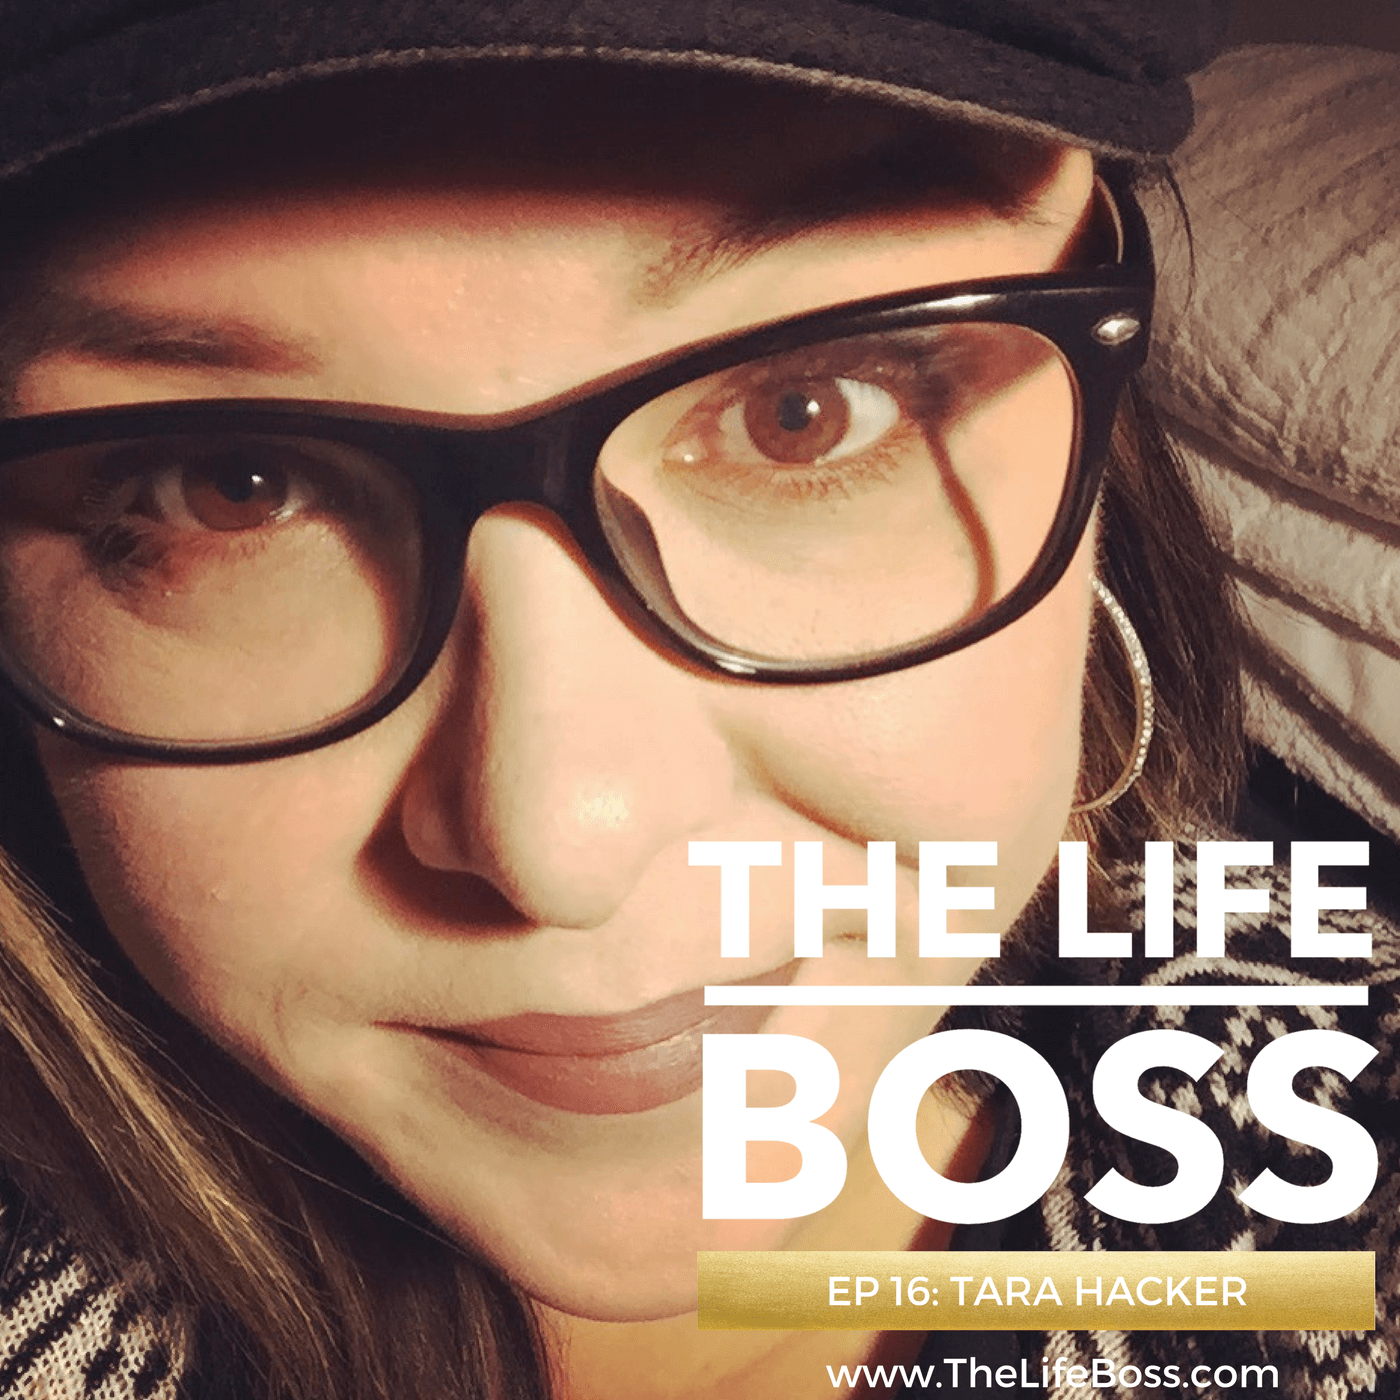 Tara Hacker on The Life Boss Show